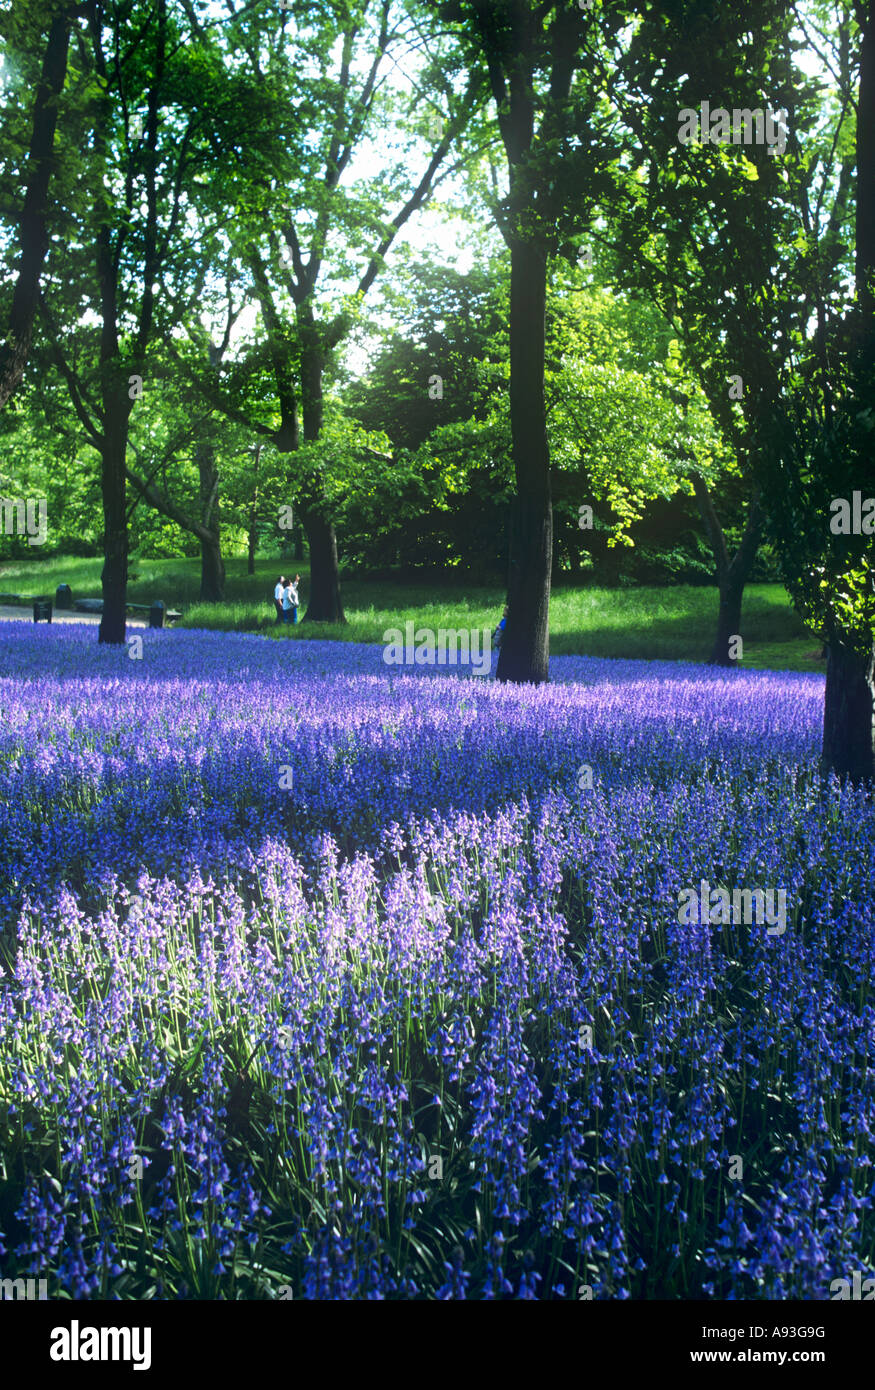 Delicieux Bluebells In Brooklyn Botanic Gardens Prospect Park Brooklyn New York USA